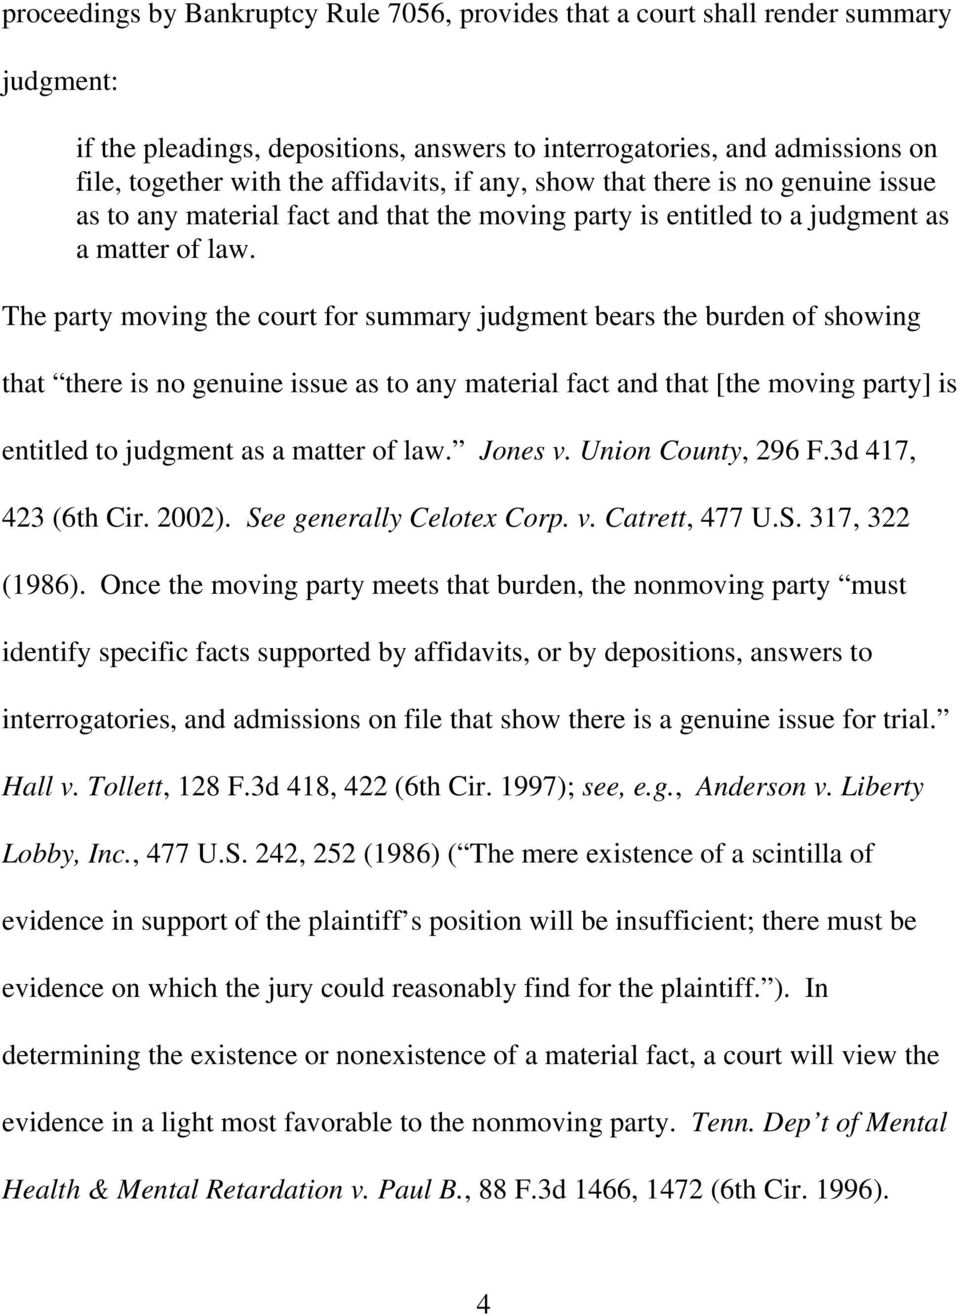 The party moving the court for summary judgment bears the burden of showing that there is no genuine issue as to any material fact and that [the moving party] is entitled to judgment as a matter of